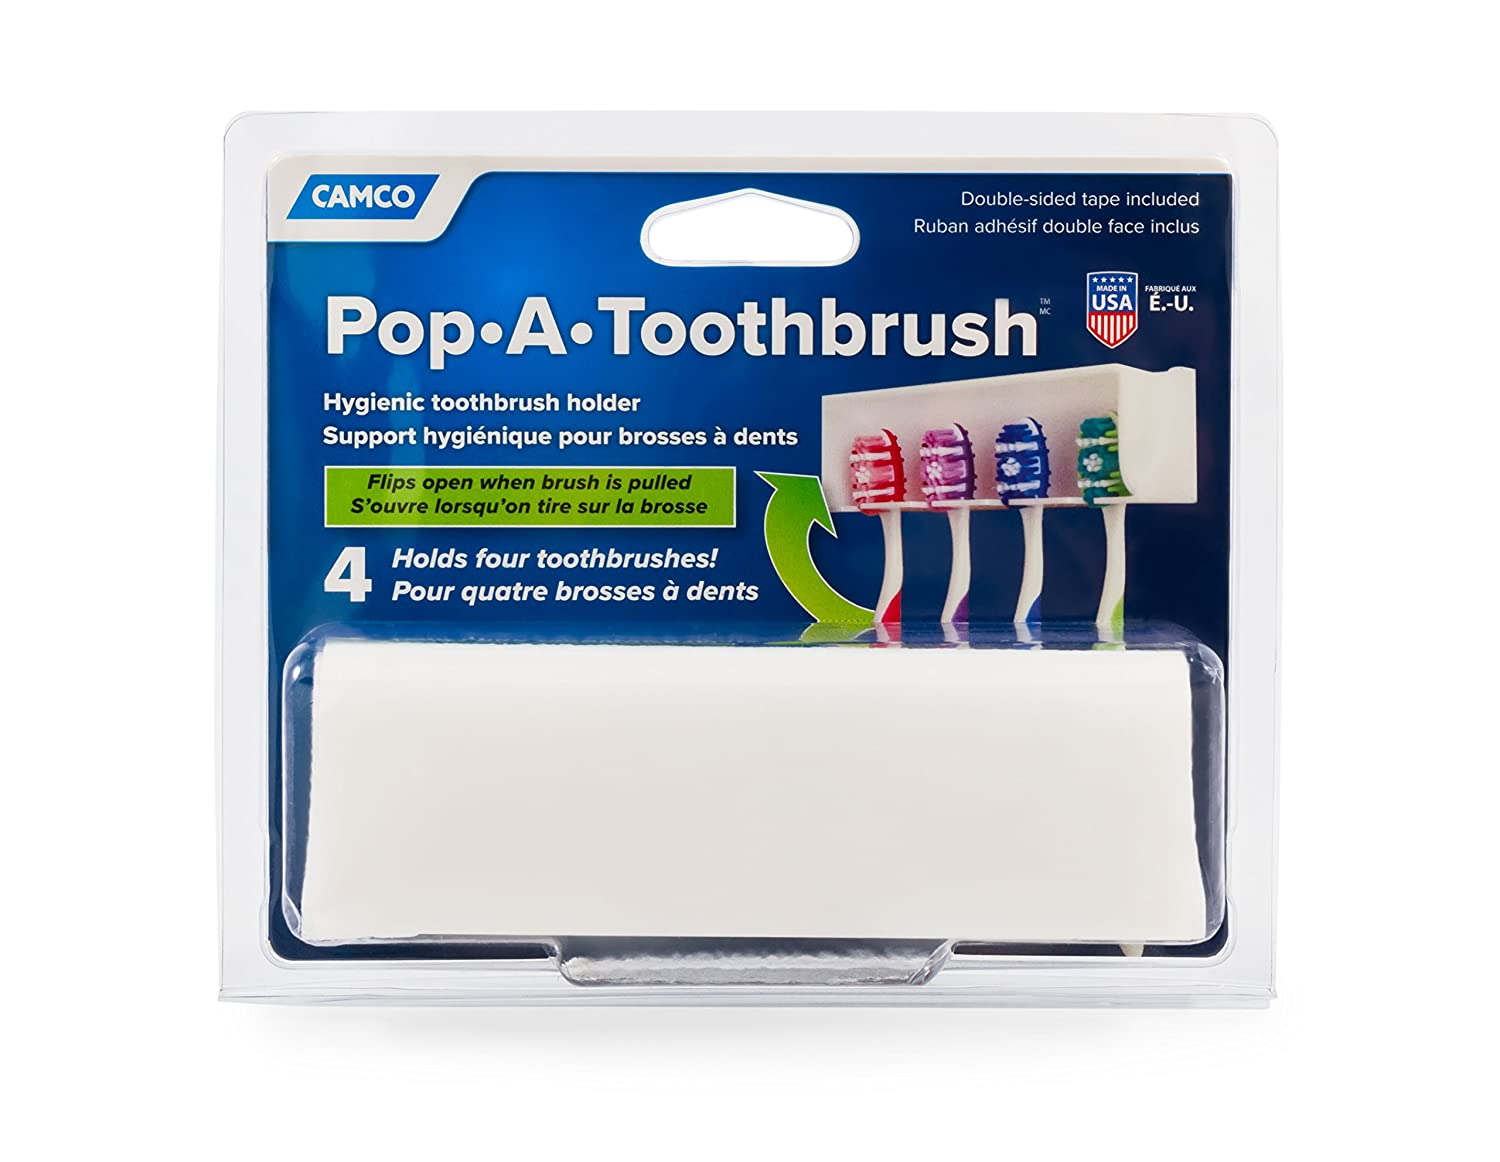 Camco A Pop-A-Toothbrush Wall Mounted Holder with Germ Protecting Cover, Holds 4, White 57204